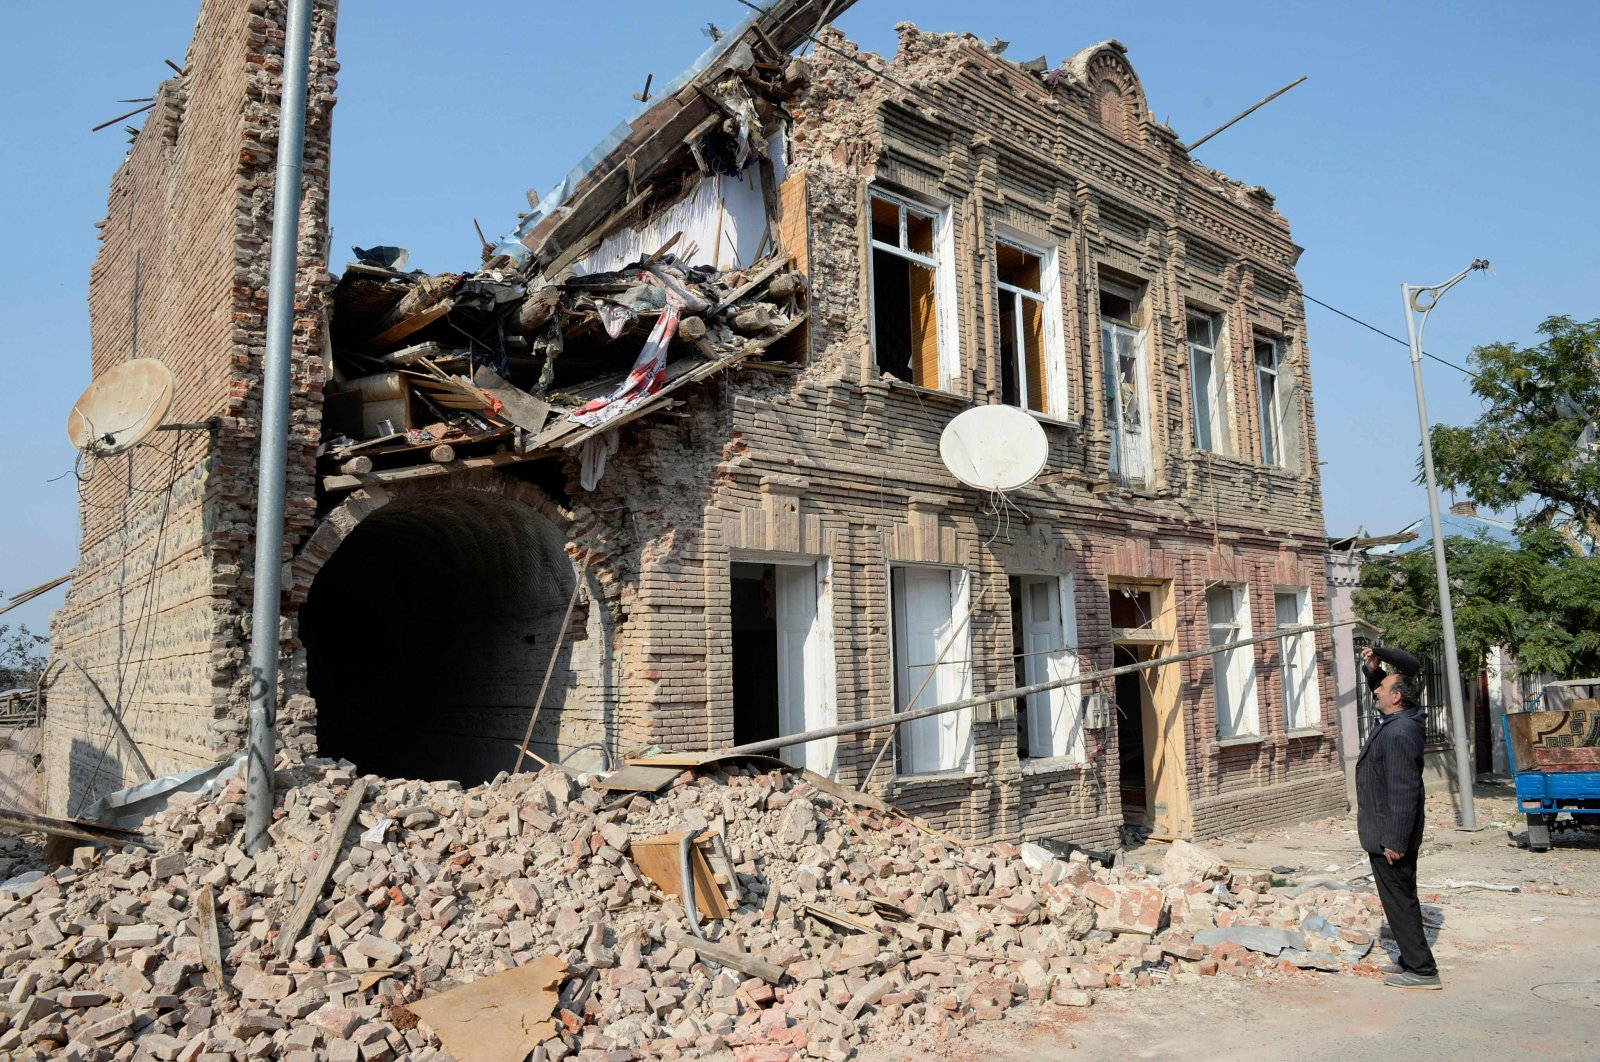 A man looks at a residential building damaged by Armenian shelling, in Ganja, Azerbaijan, Oct. 27, 2020. (AFP Photo)